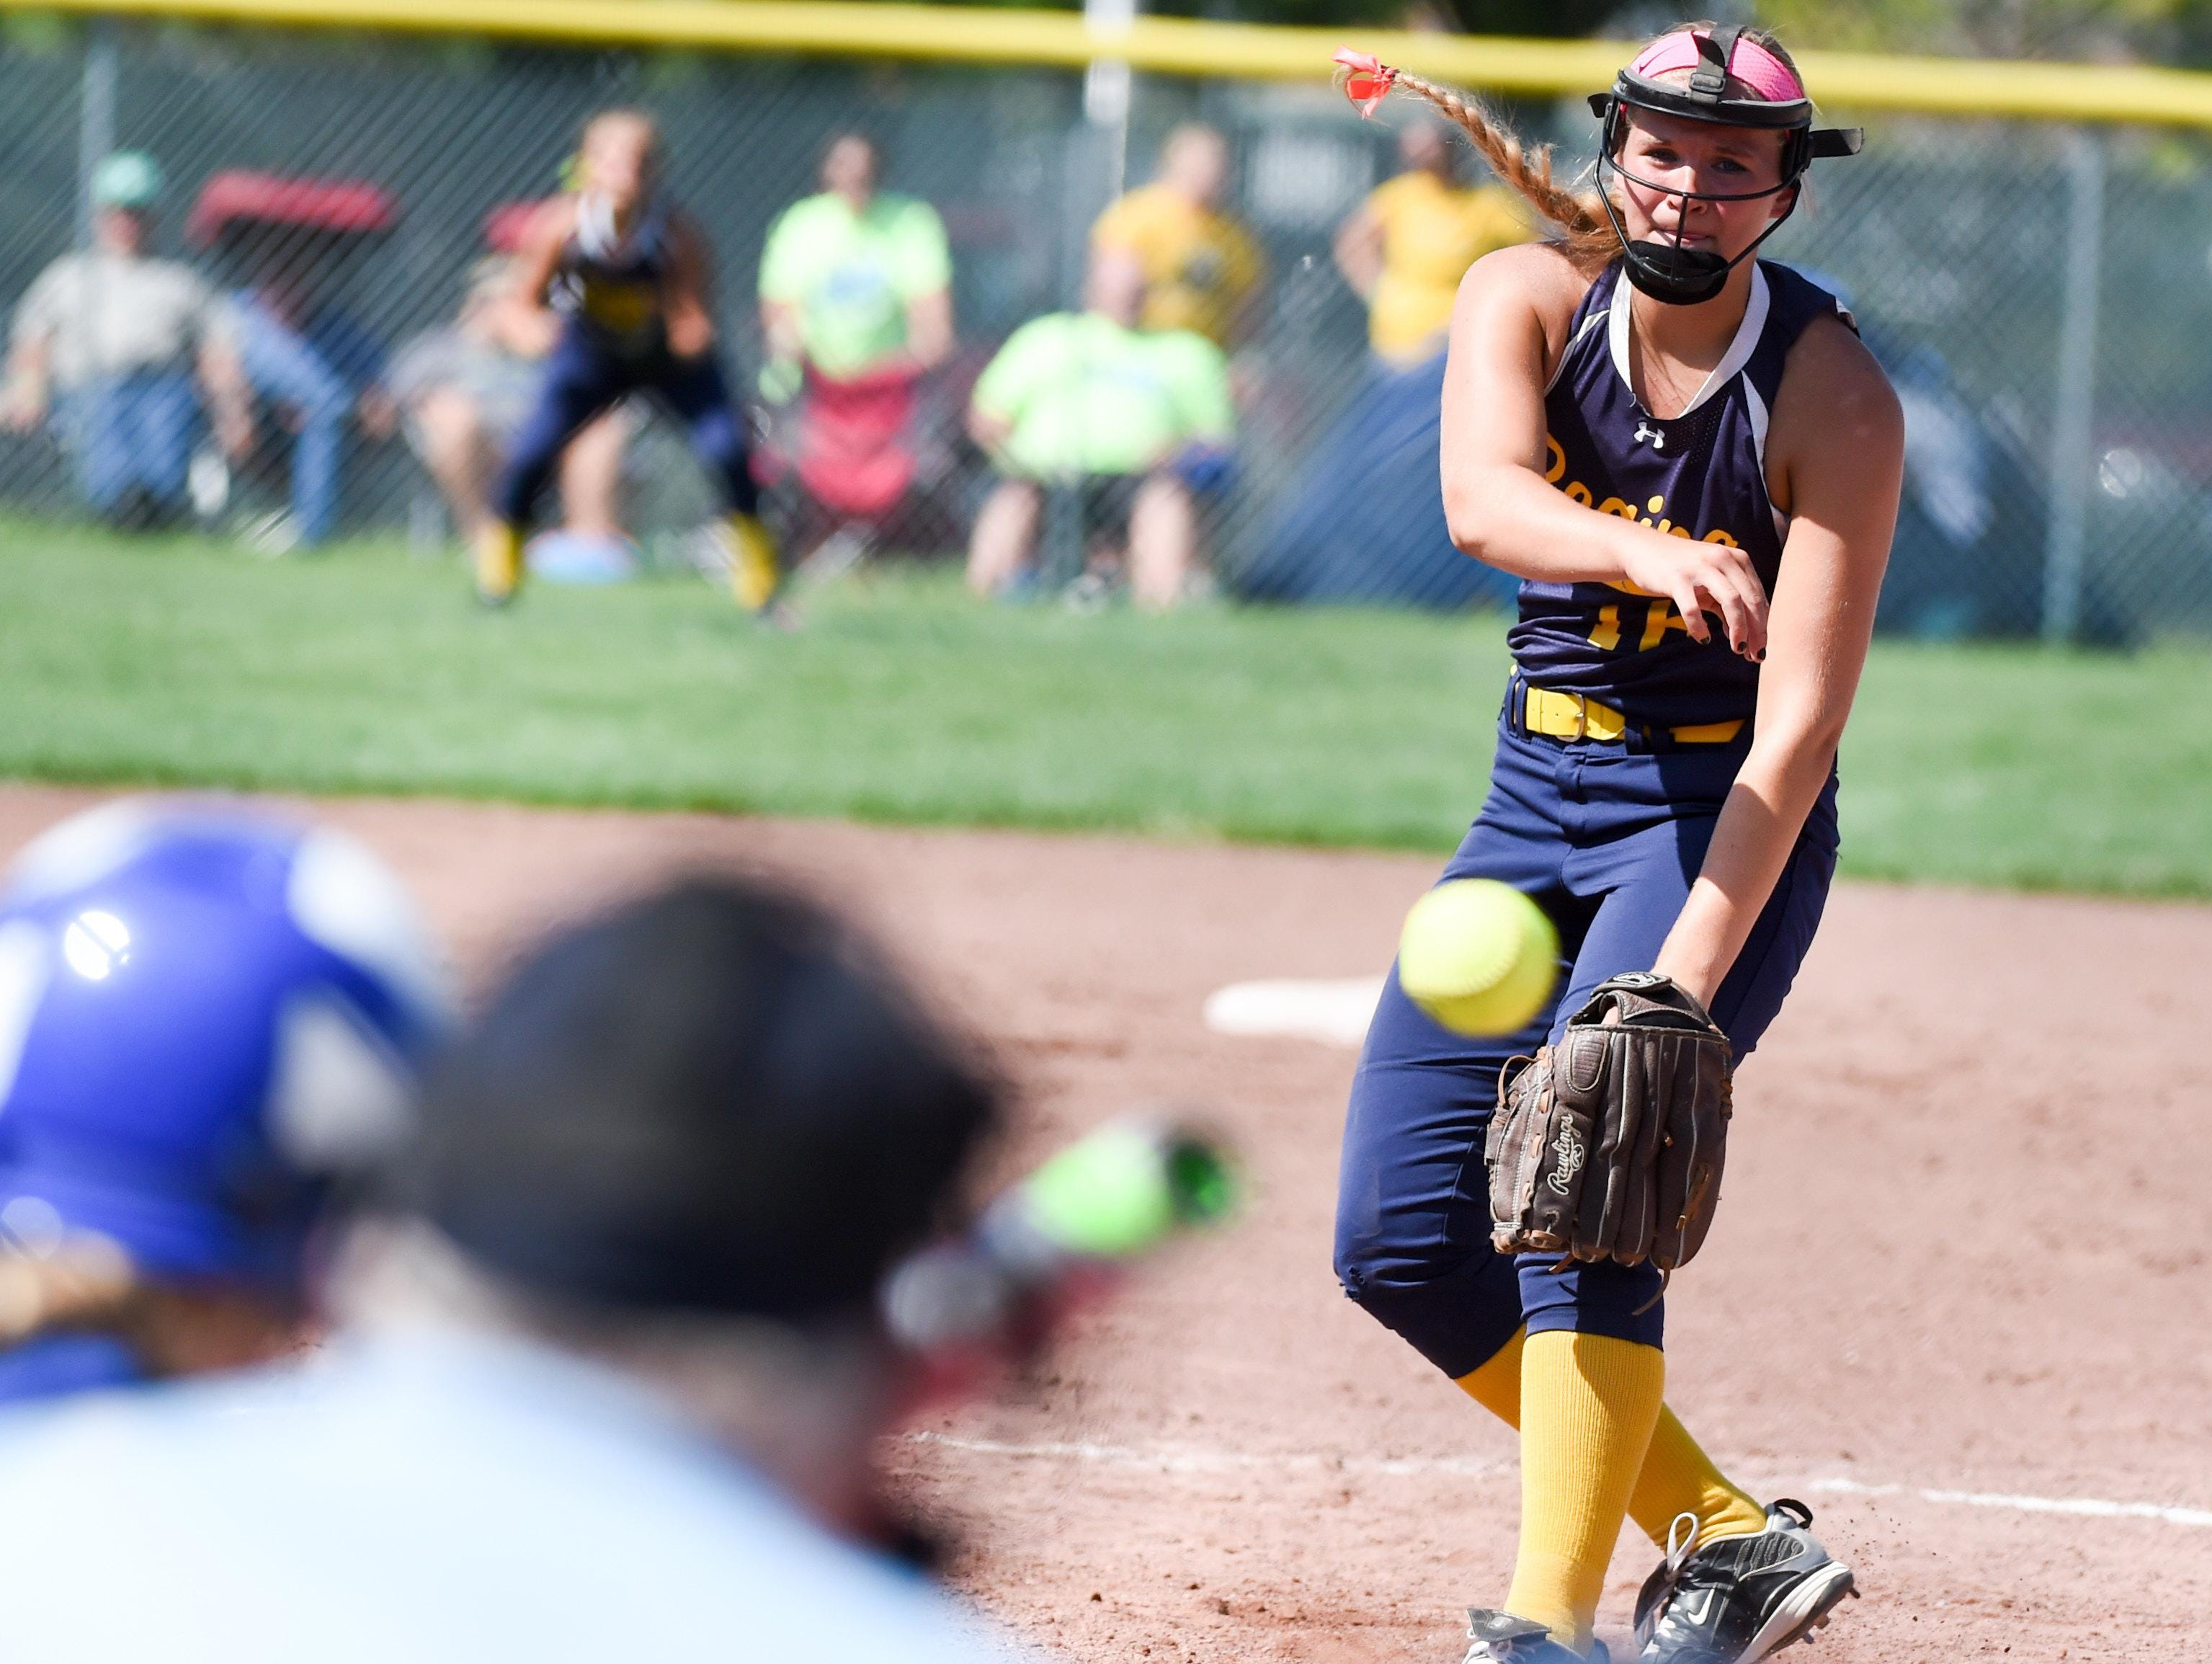 Regina pitcher Sarah Lehman is 4-0 with a 0.66 earned-run average with 43 strikeouts in 32 postseason innings entering Thursday's Class 2A semifinal.